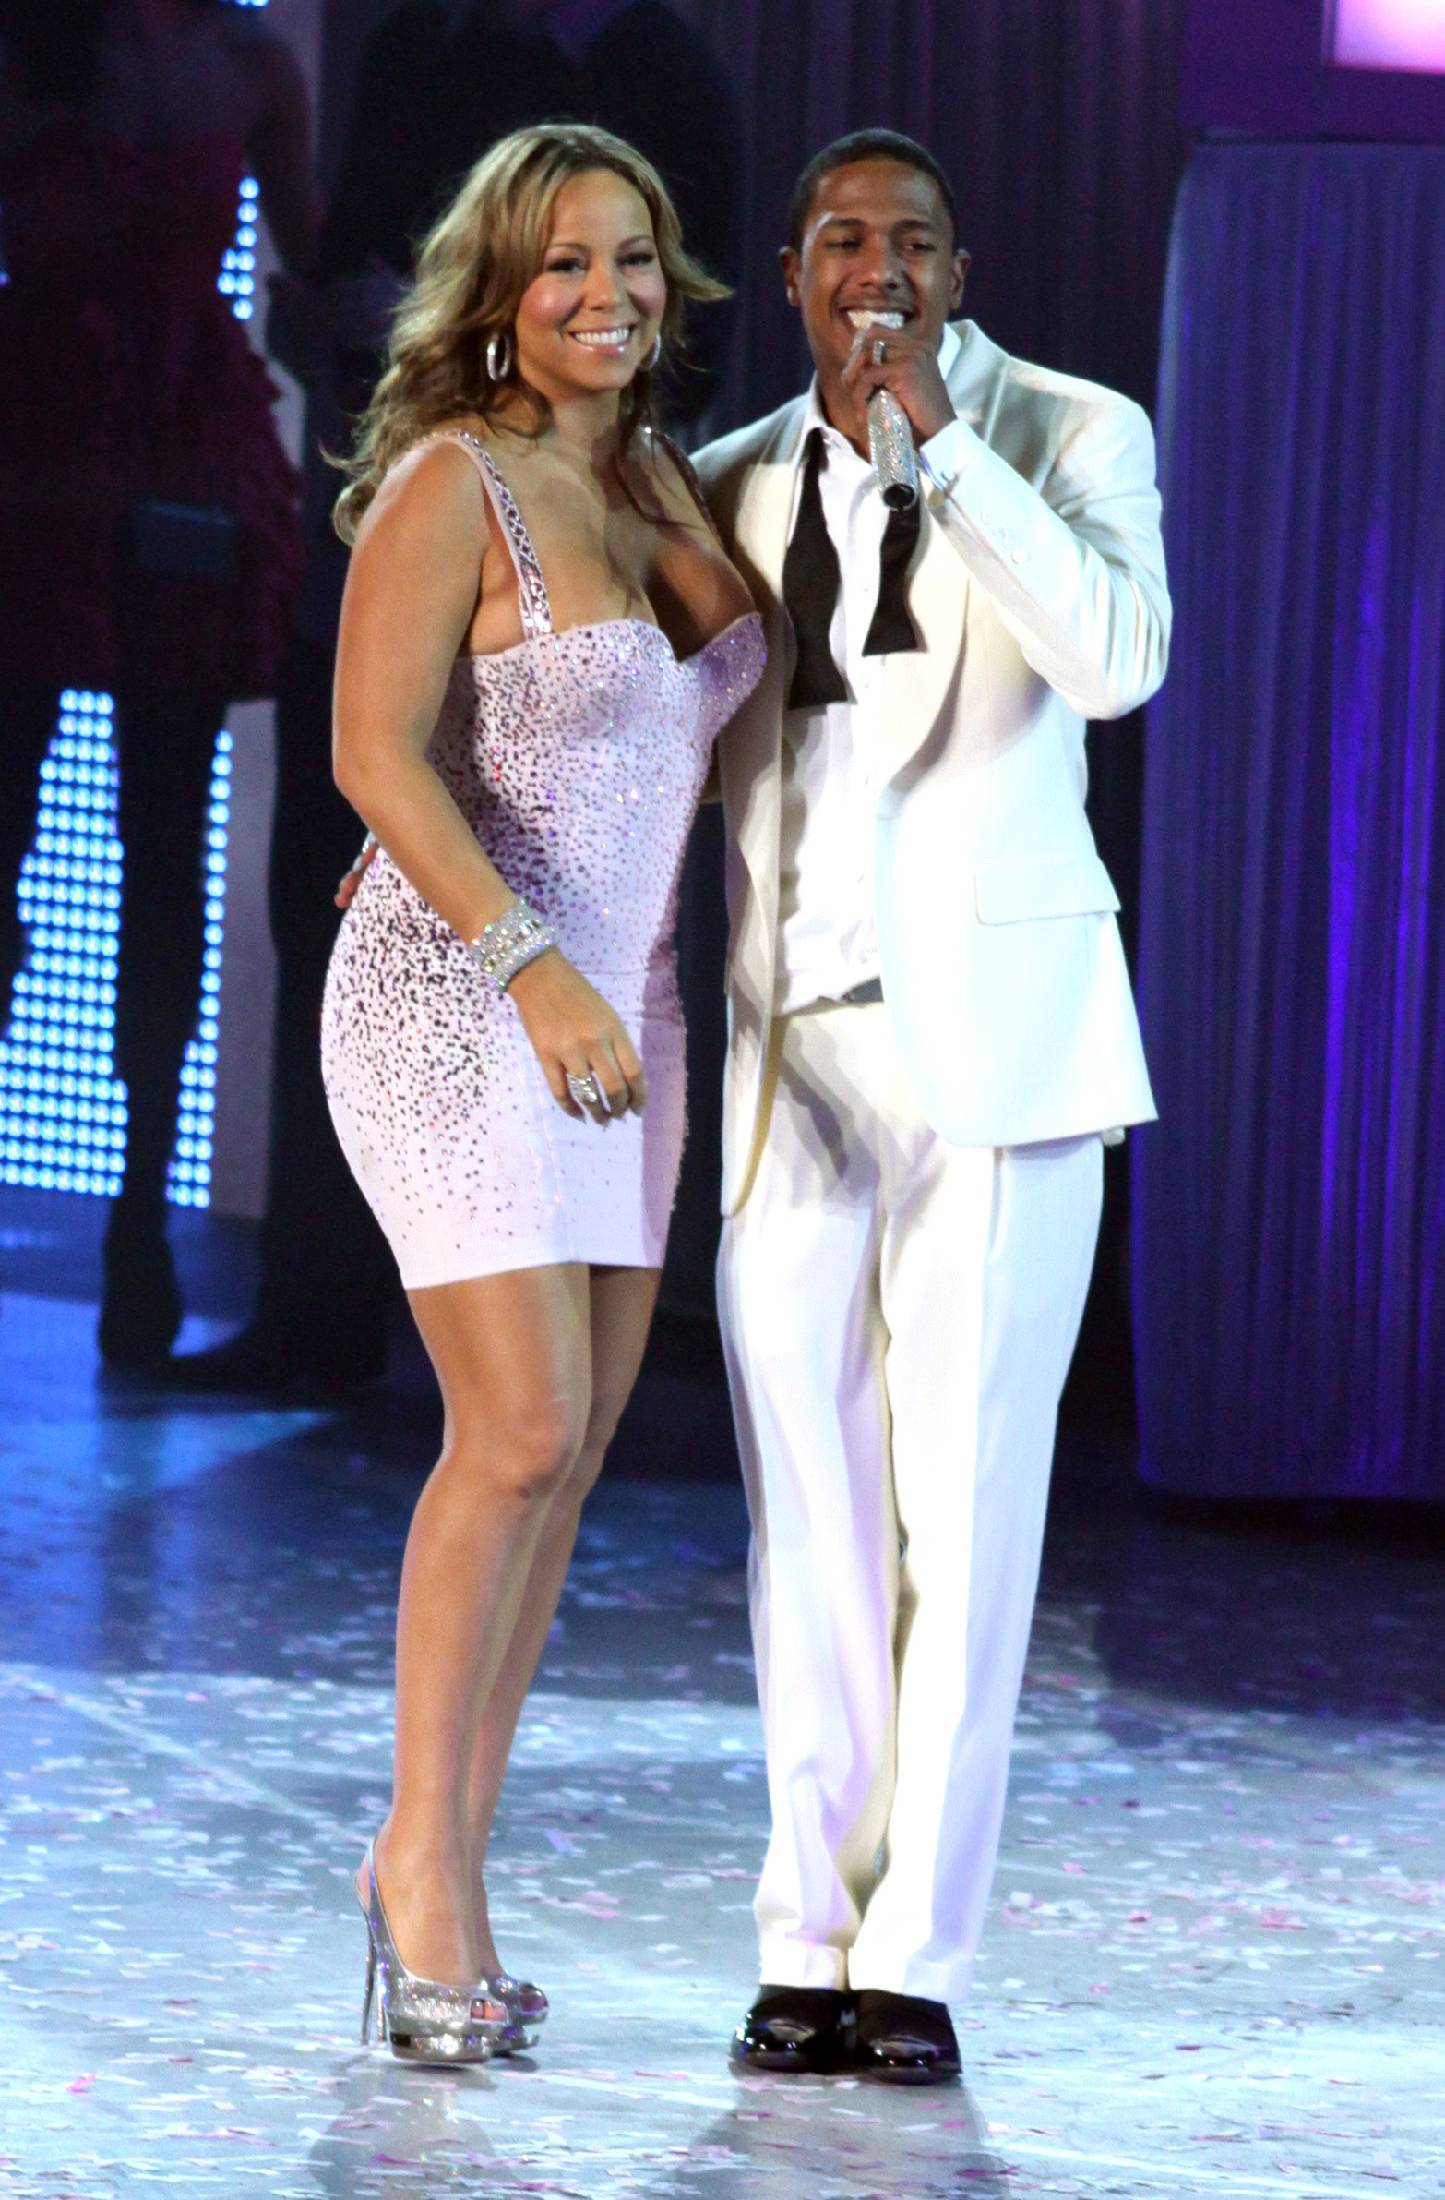 53184_Mariah_Carey_performs_at_Madison_Square_Garden_in_New_York_City-10_122_97lo.jpg